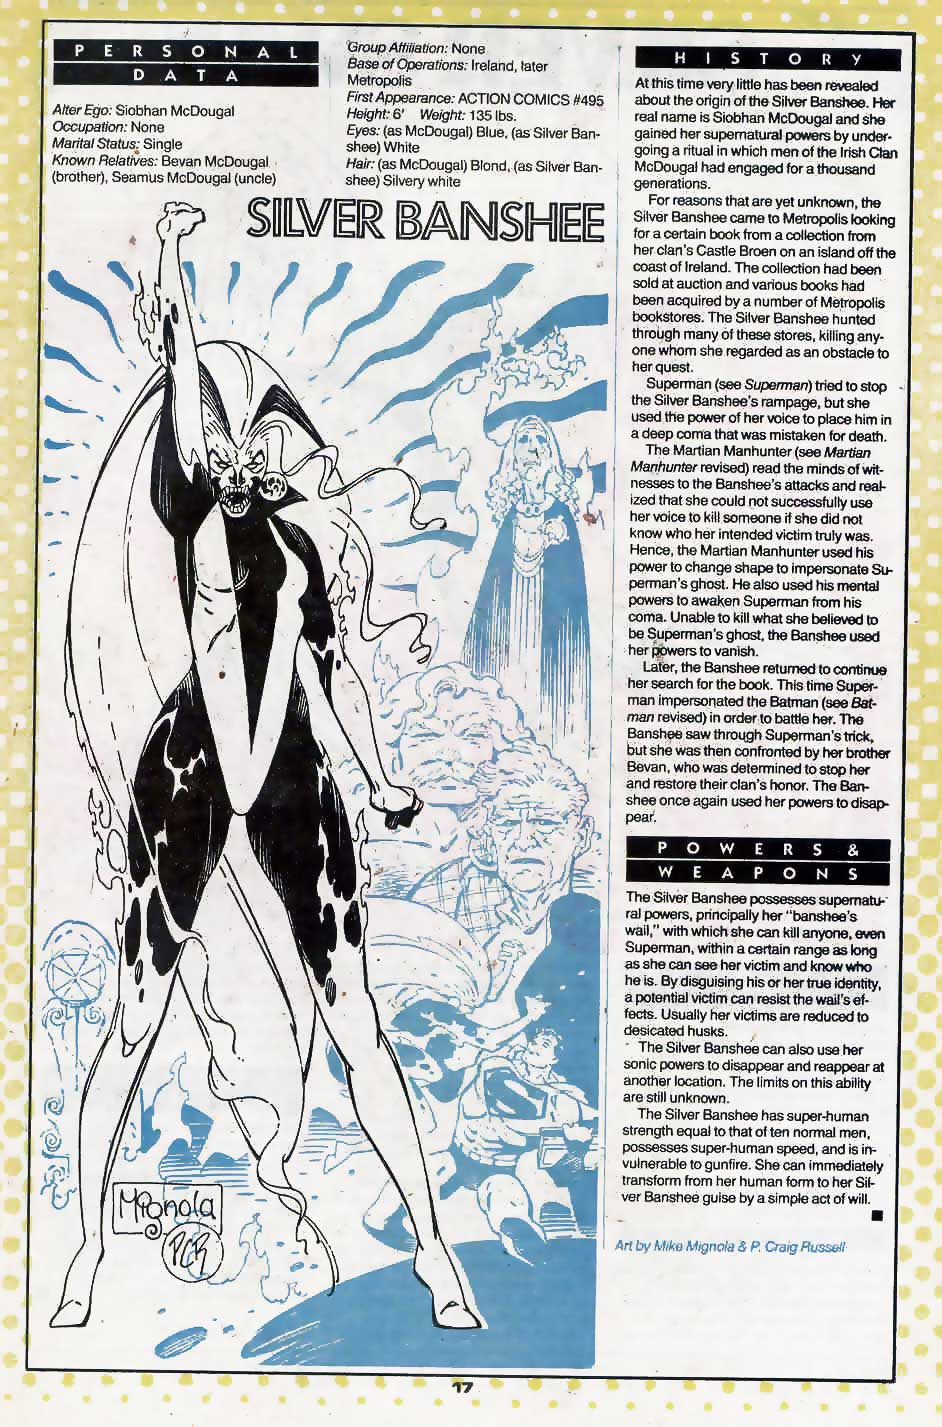 Who's Who Update 88 #3 Silver Banshee by Mike Mignola and P Craig Russell